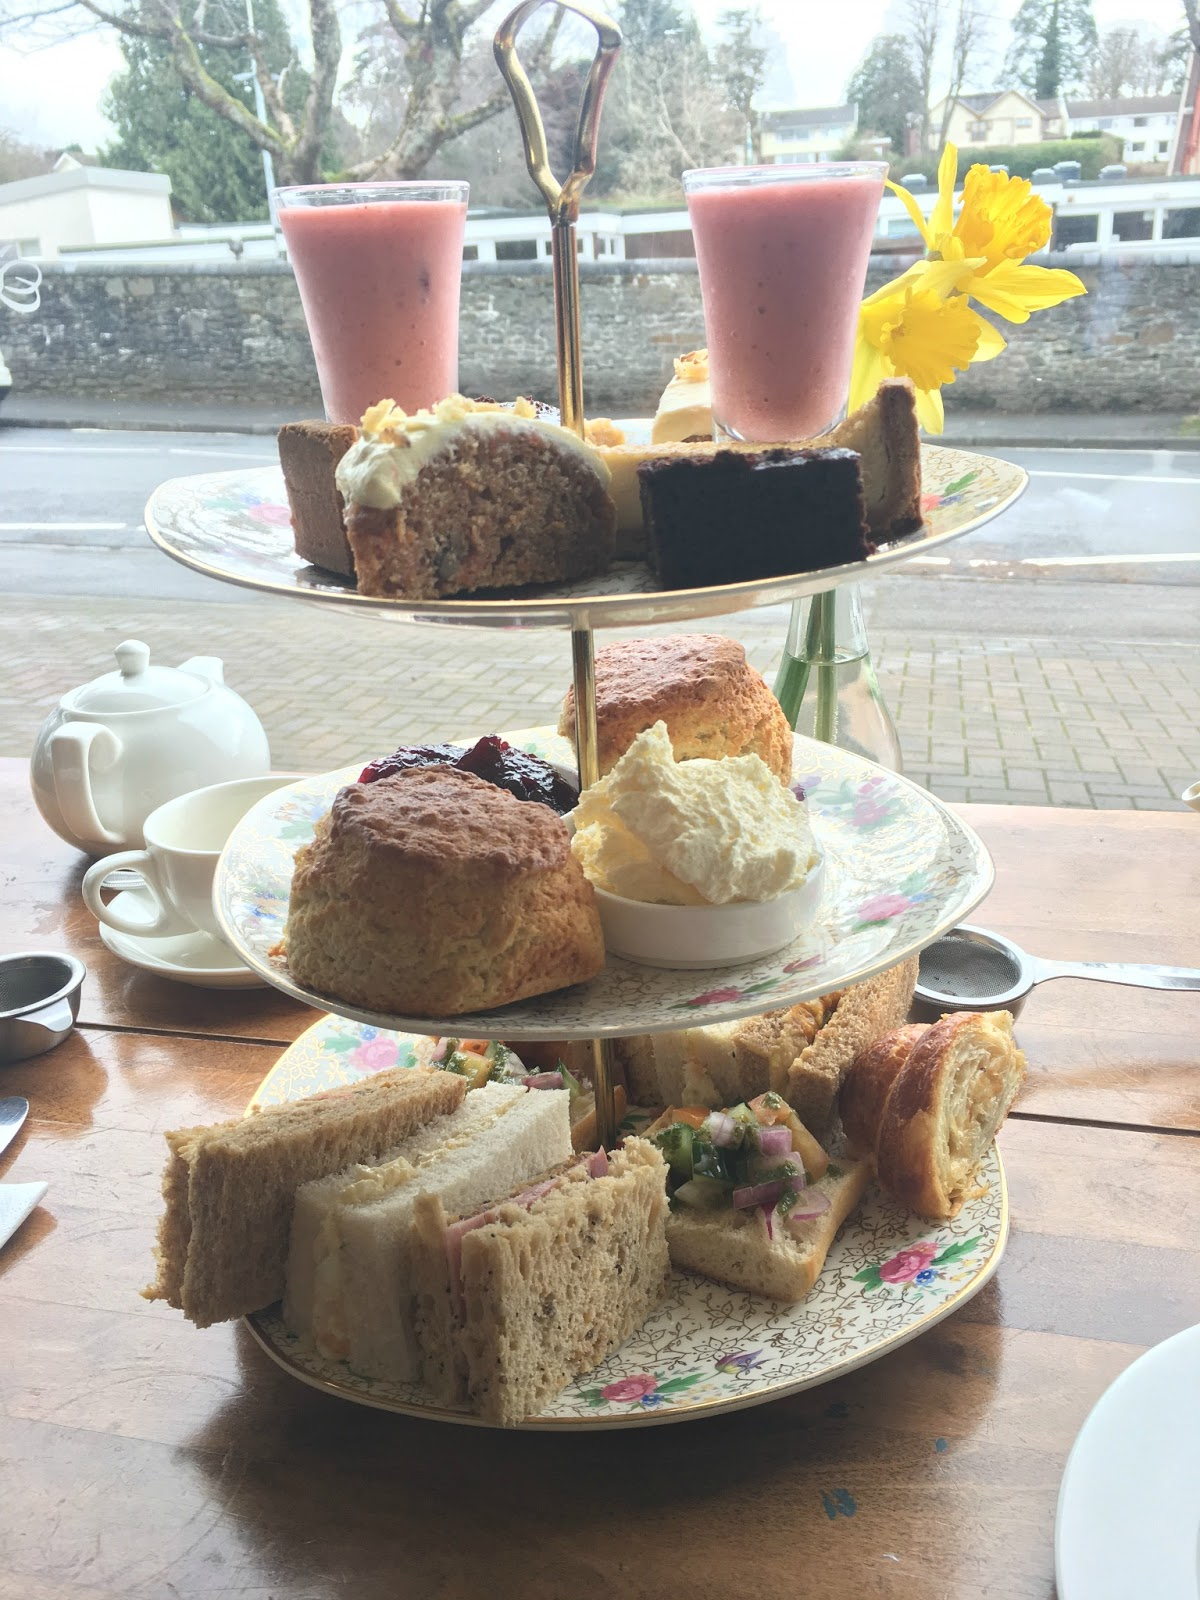 afternoon-tea-complete-with-cakes-scones-sandwiches-at-the-orchard-radyr-cardiff